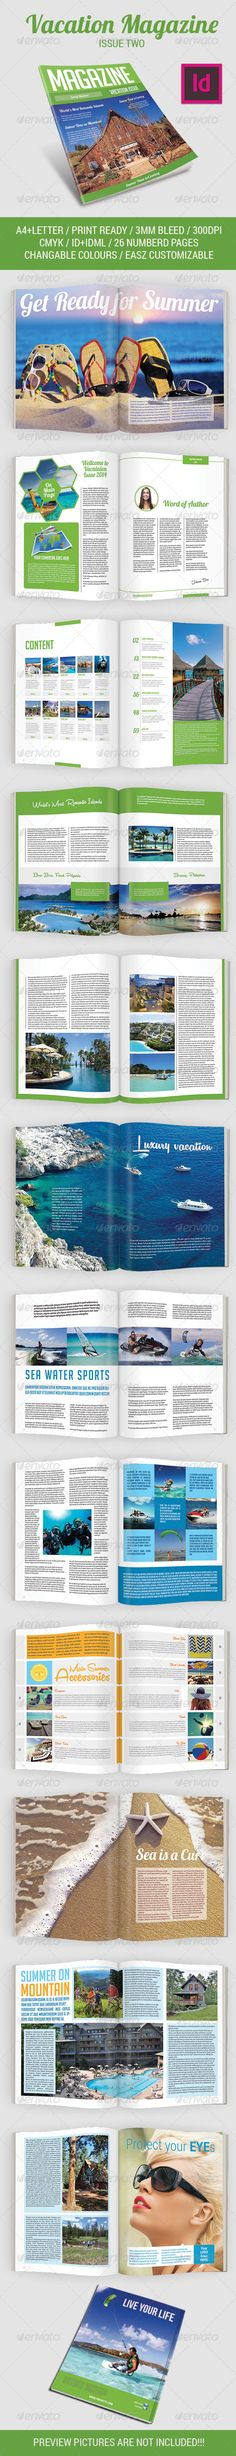 Vacation Magazine Template Issue Two - #Magazines Print #Templates Download here: https://graphicriver.net/item/vacation-magazine-template-issue-two/8028321?ref=alena994